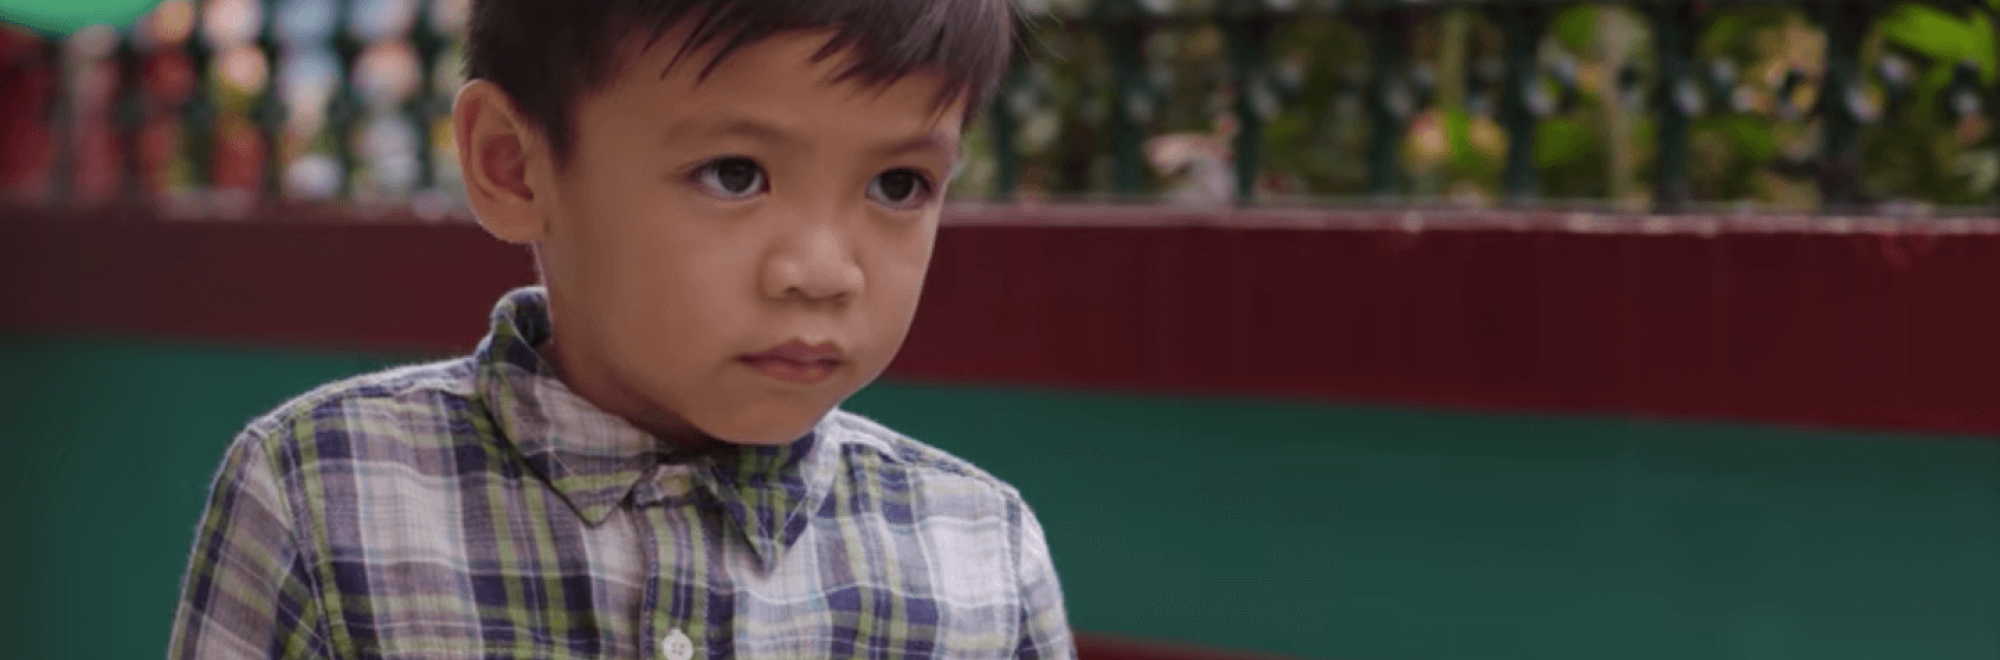 Vicks uses the true story of a Philippines' boy born with HIV to show the power of love